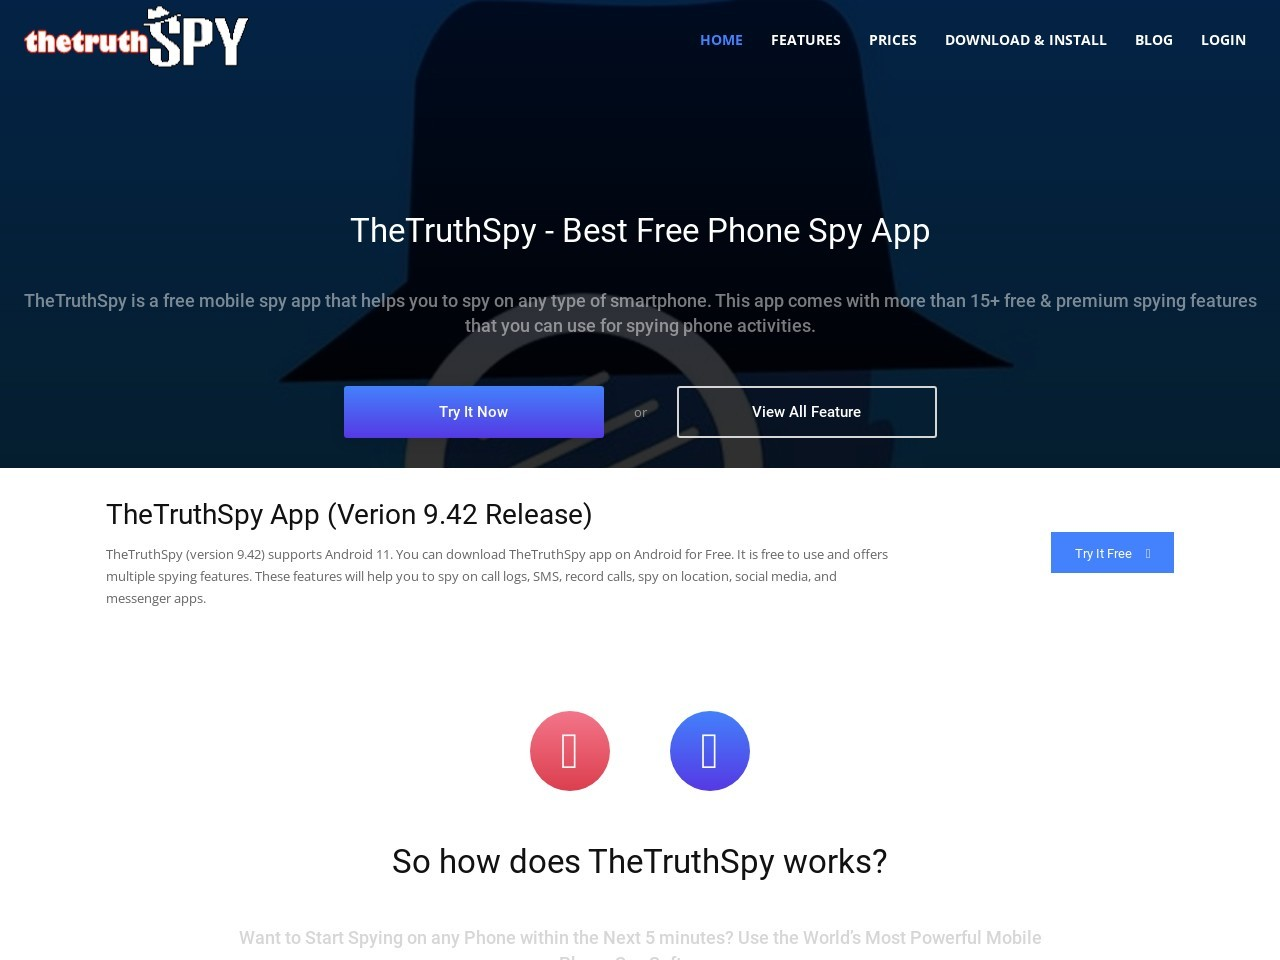 TheTruthSpy 1 year Vouchers